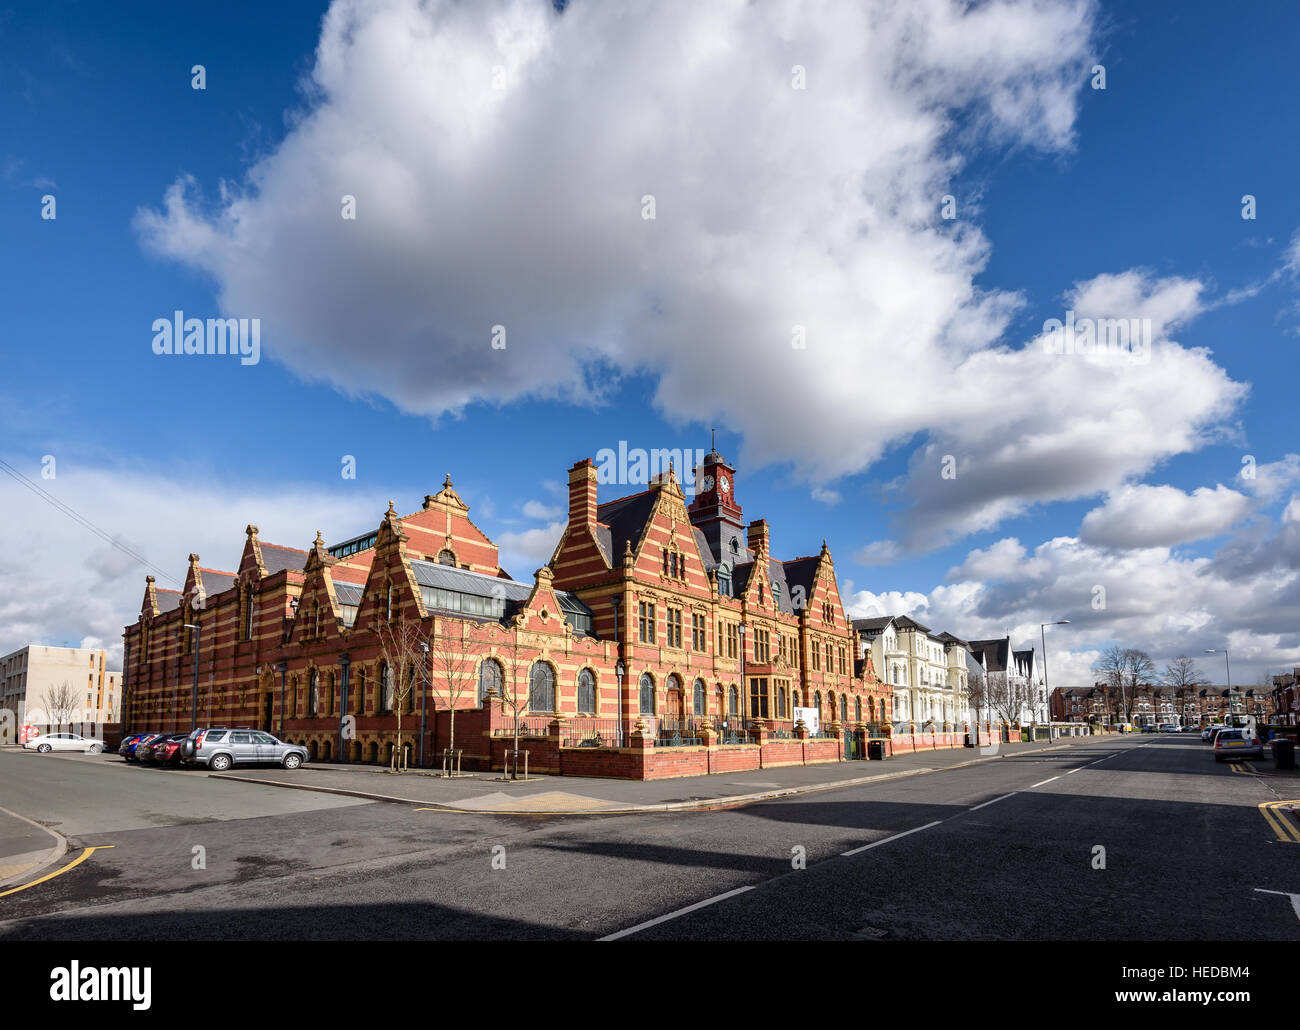 Victoria Baths is a Grade II listed building, situated in the Long sight area of Manchester, in northwest England. - Stock Image